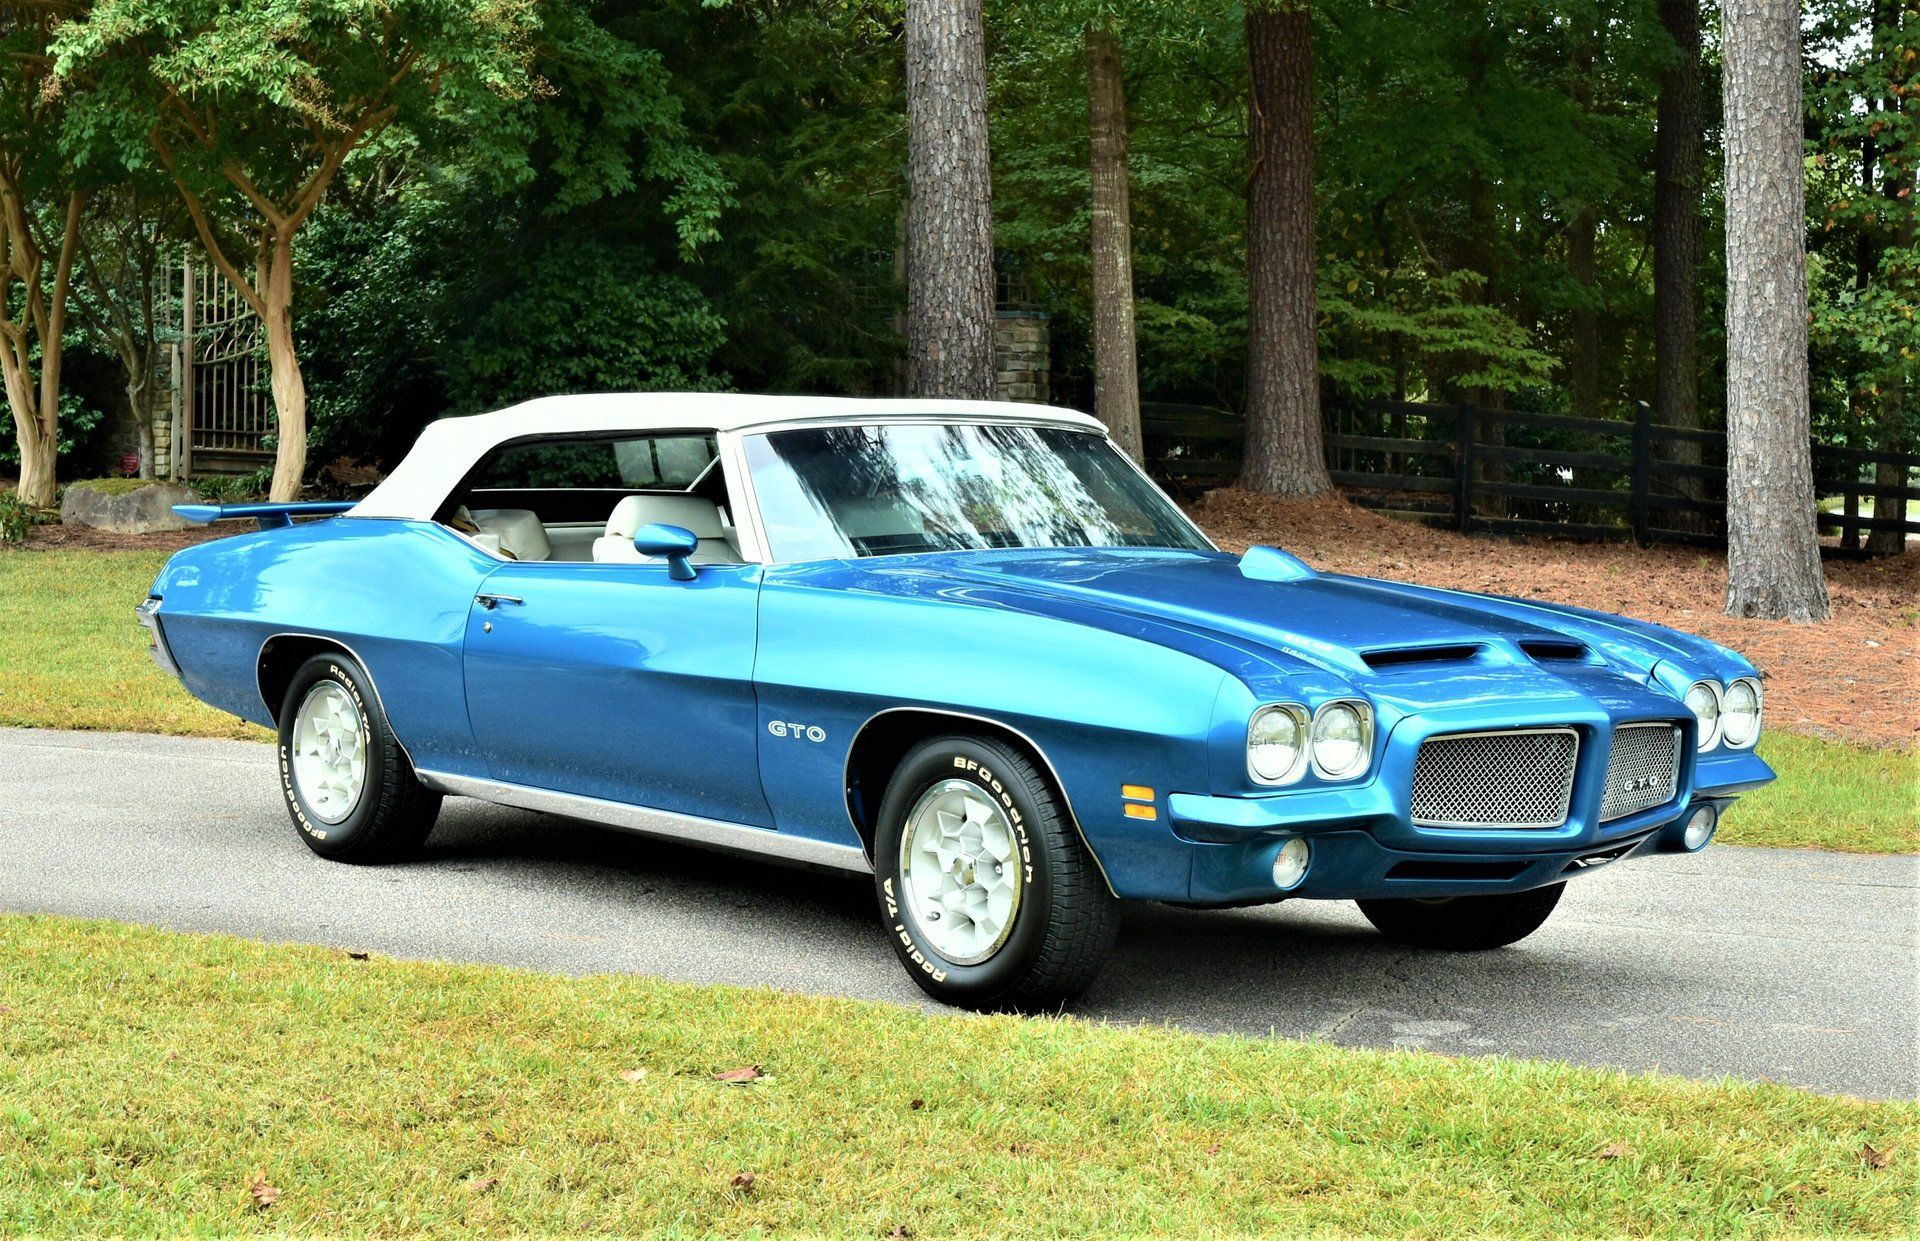 Coolest Cars For Sale On Motorious To Beat The August Heat